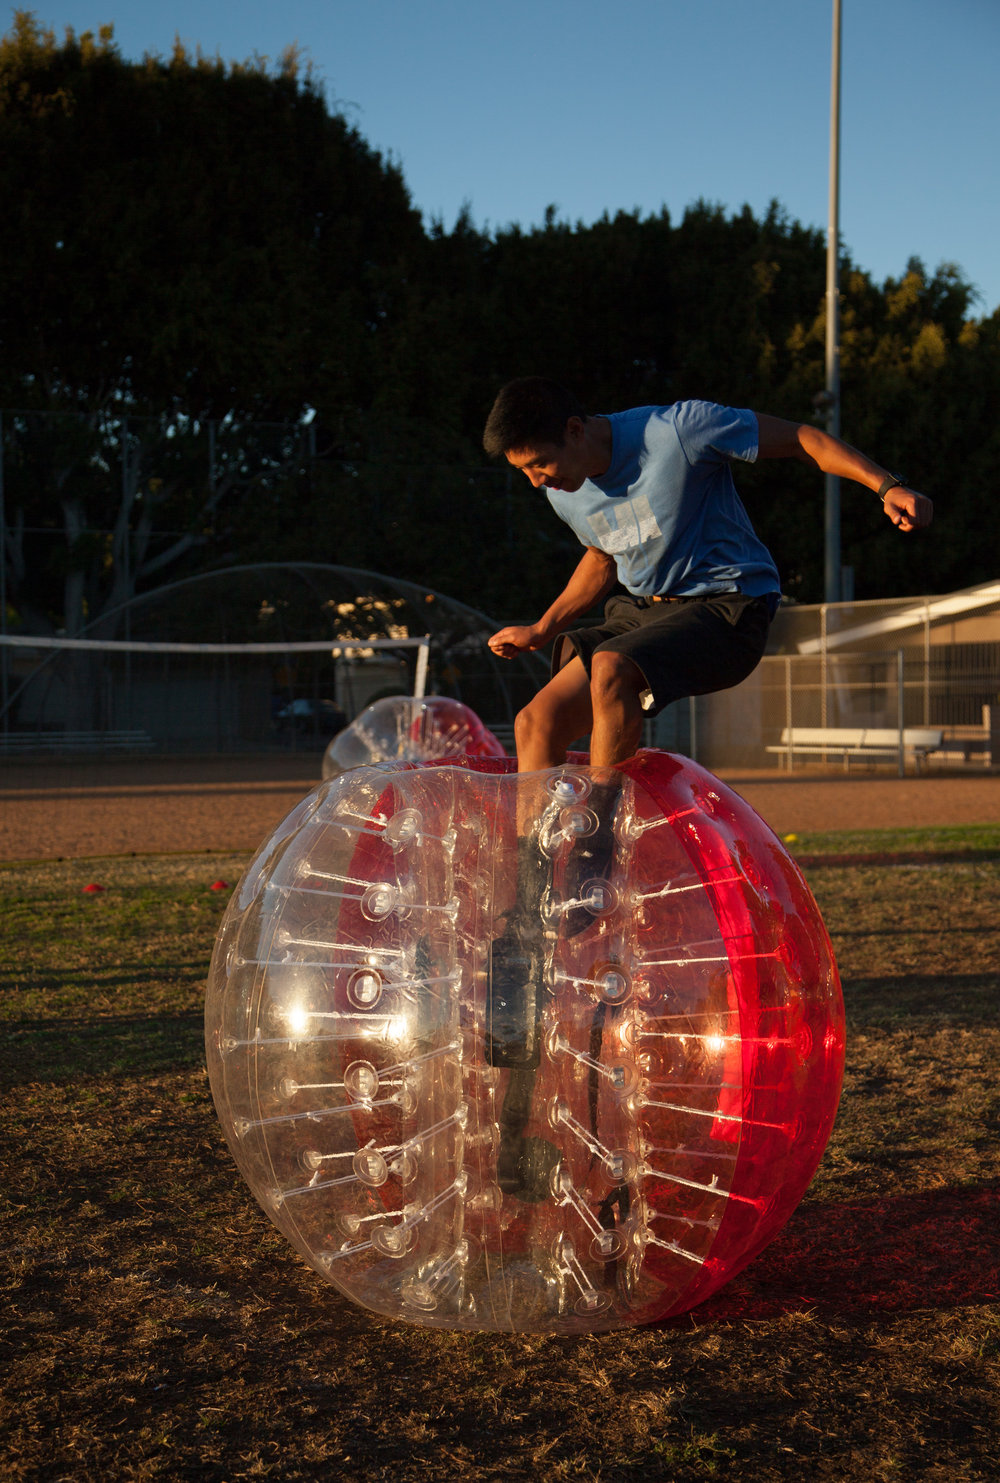 Jump into a bubble suit in burbank